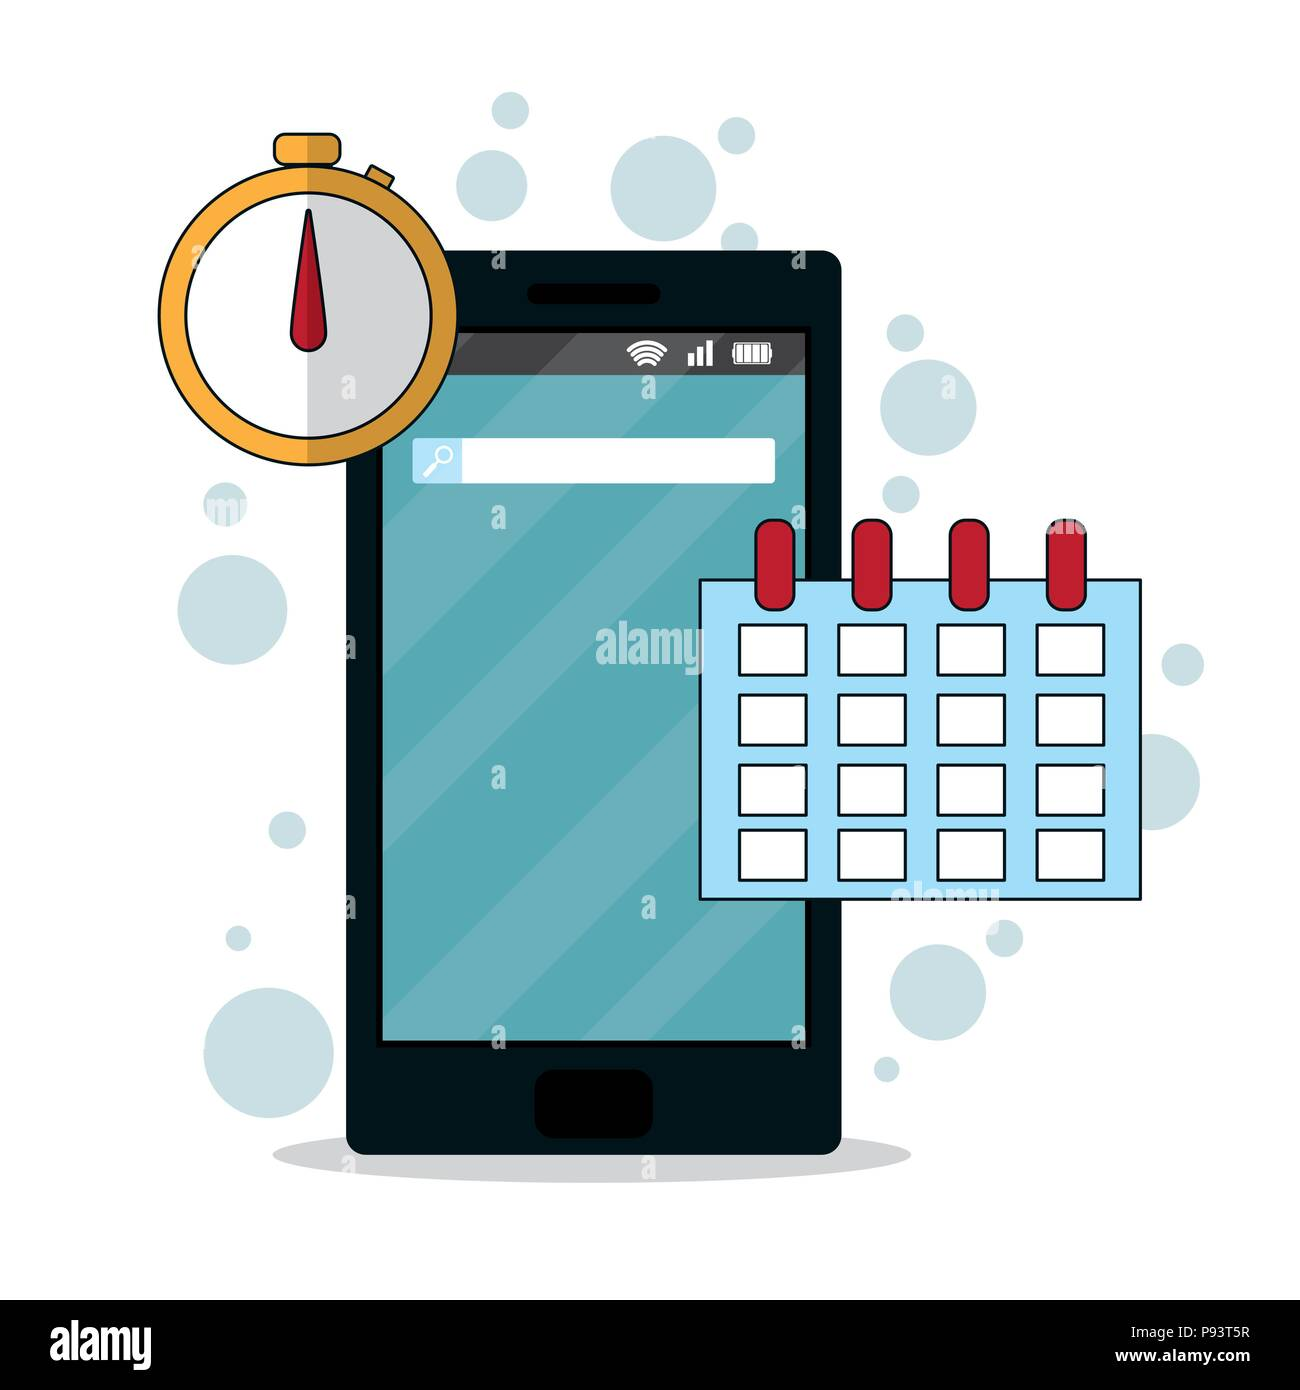 Smartphone mobile applications - Stock Image